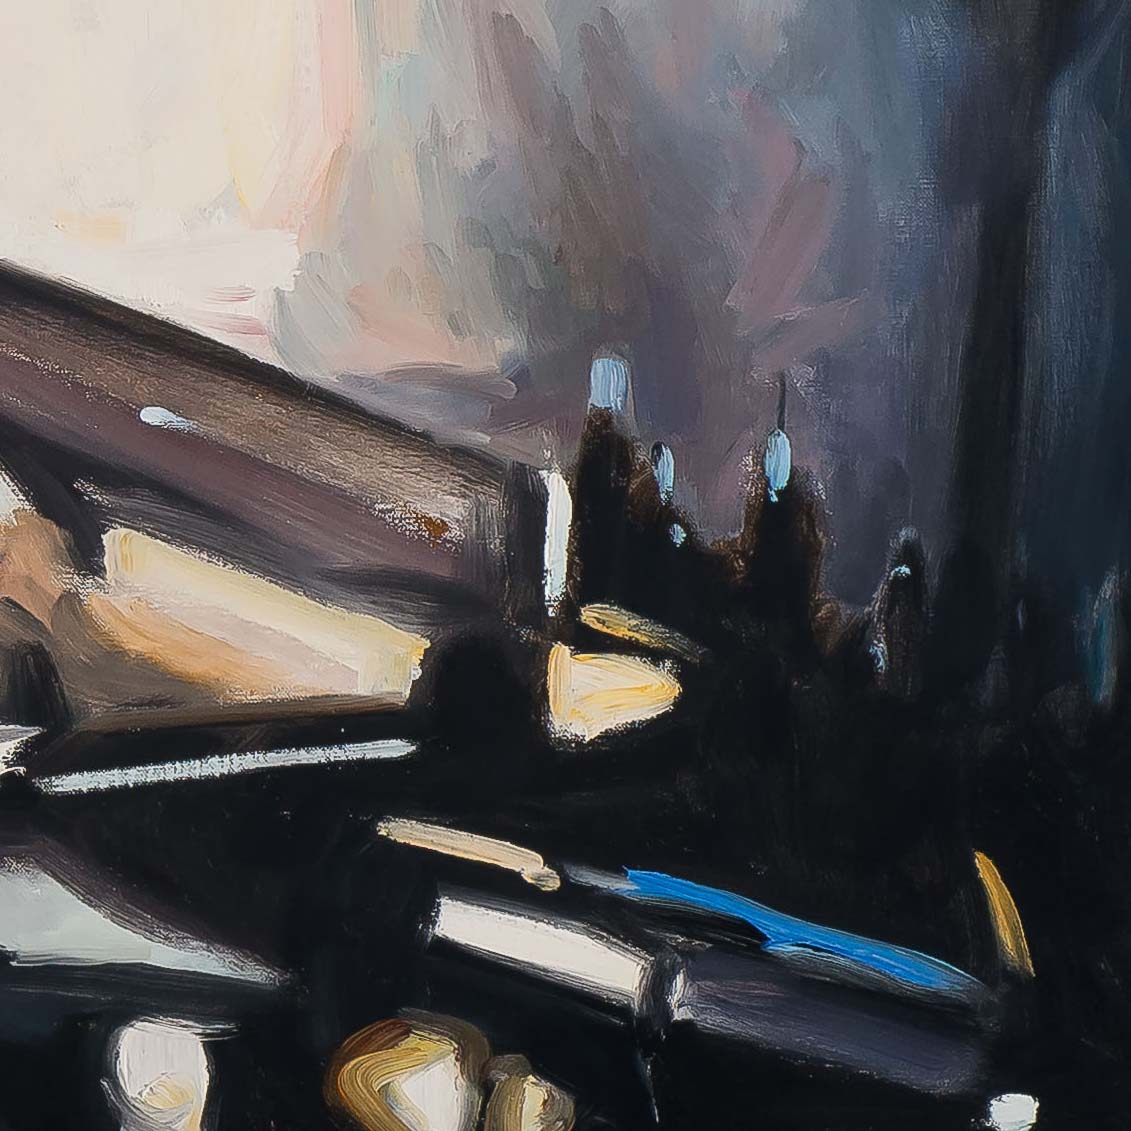 At The Pulitzer Bar 54x72-painting by-Paul Oxborough-detail